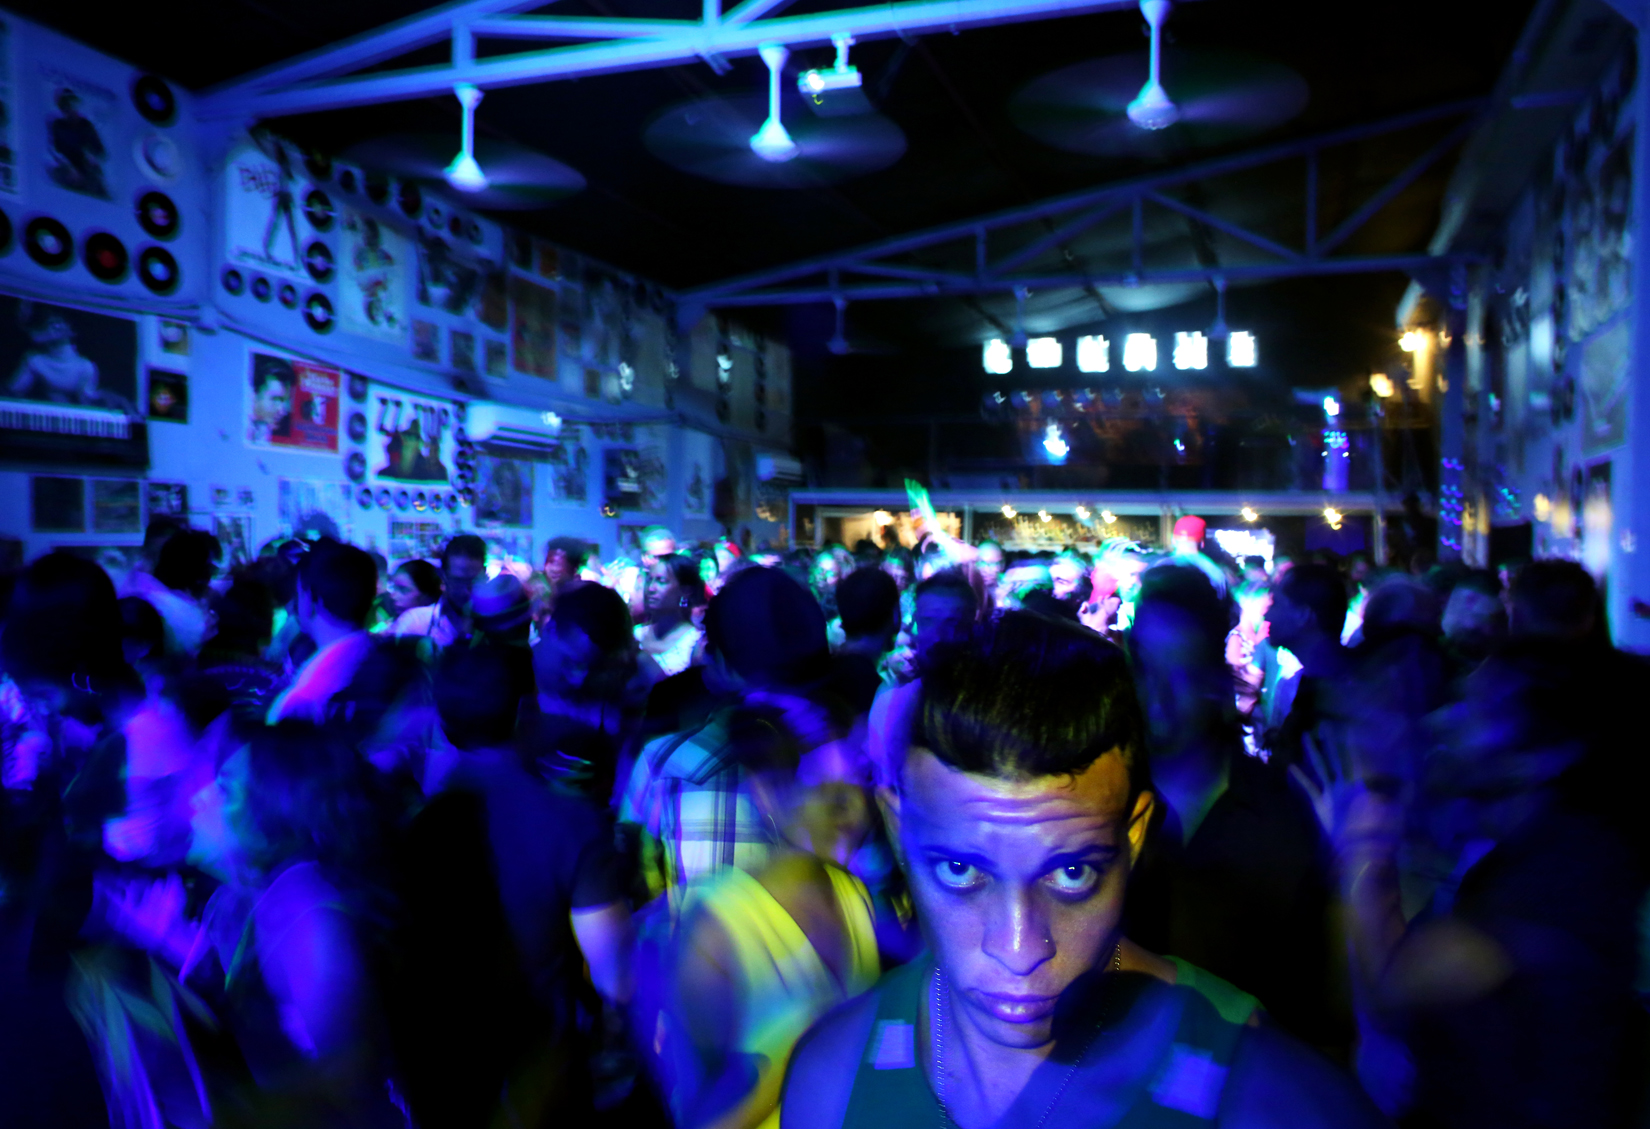 A room full of dancers mingle to the sounds of DJ Mike Polarni following a concert at Fabrica de Arte, in the Vedado neighborhood of Havana, Cuba. Fabrica de Arte, which opened in 2014 with the backing of the Ministry of Culture, is an industrial factory turned performance space where established and unknown musicians, painters, photographers, and playwrights alike show their work.